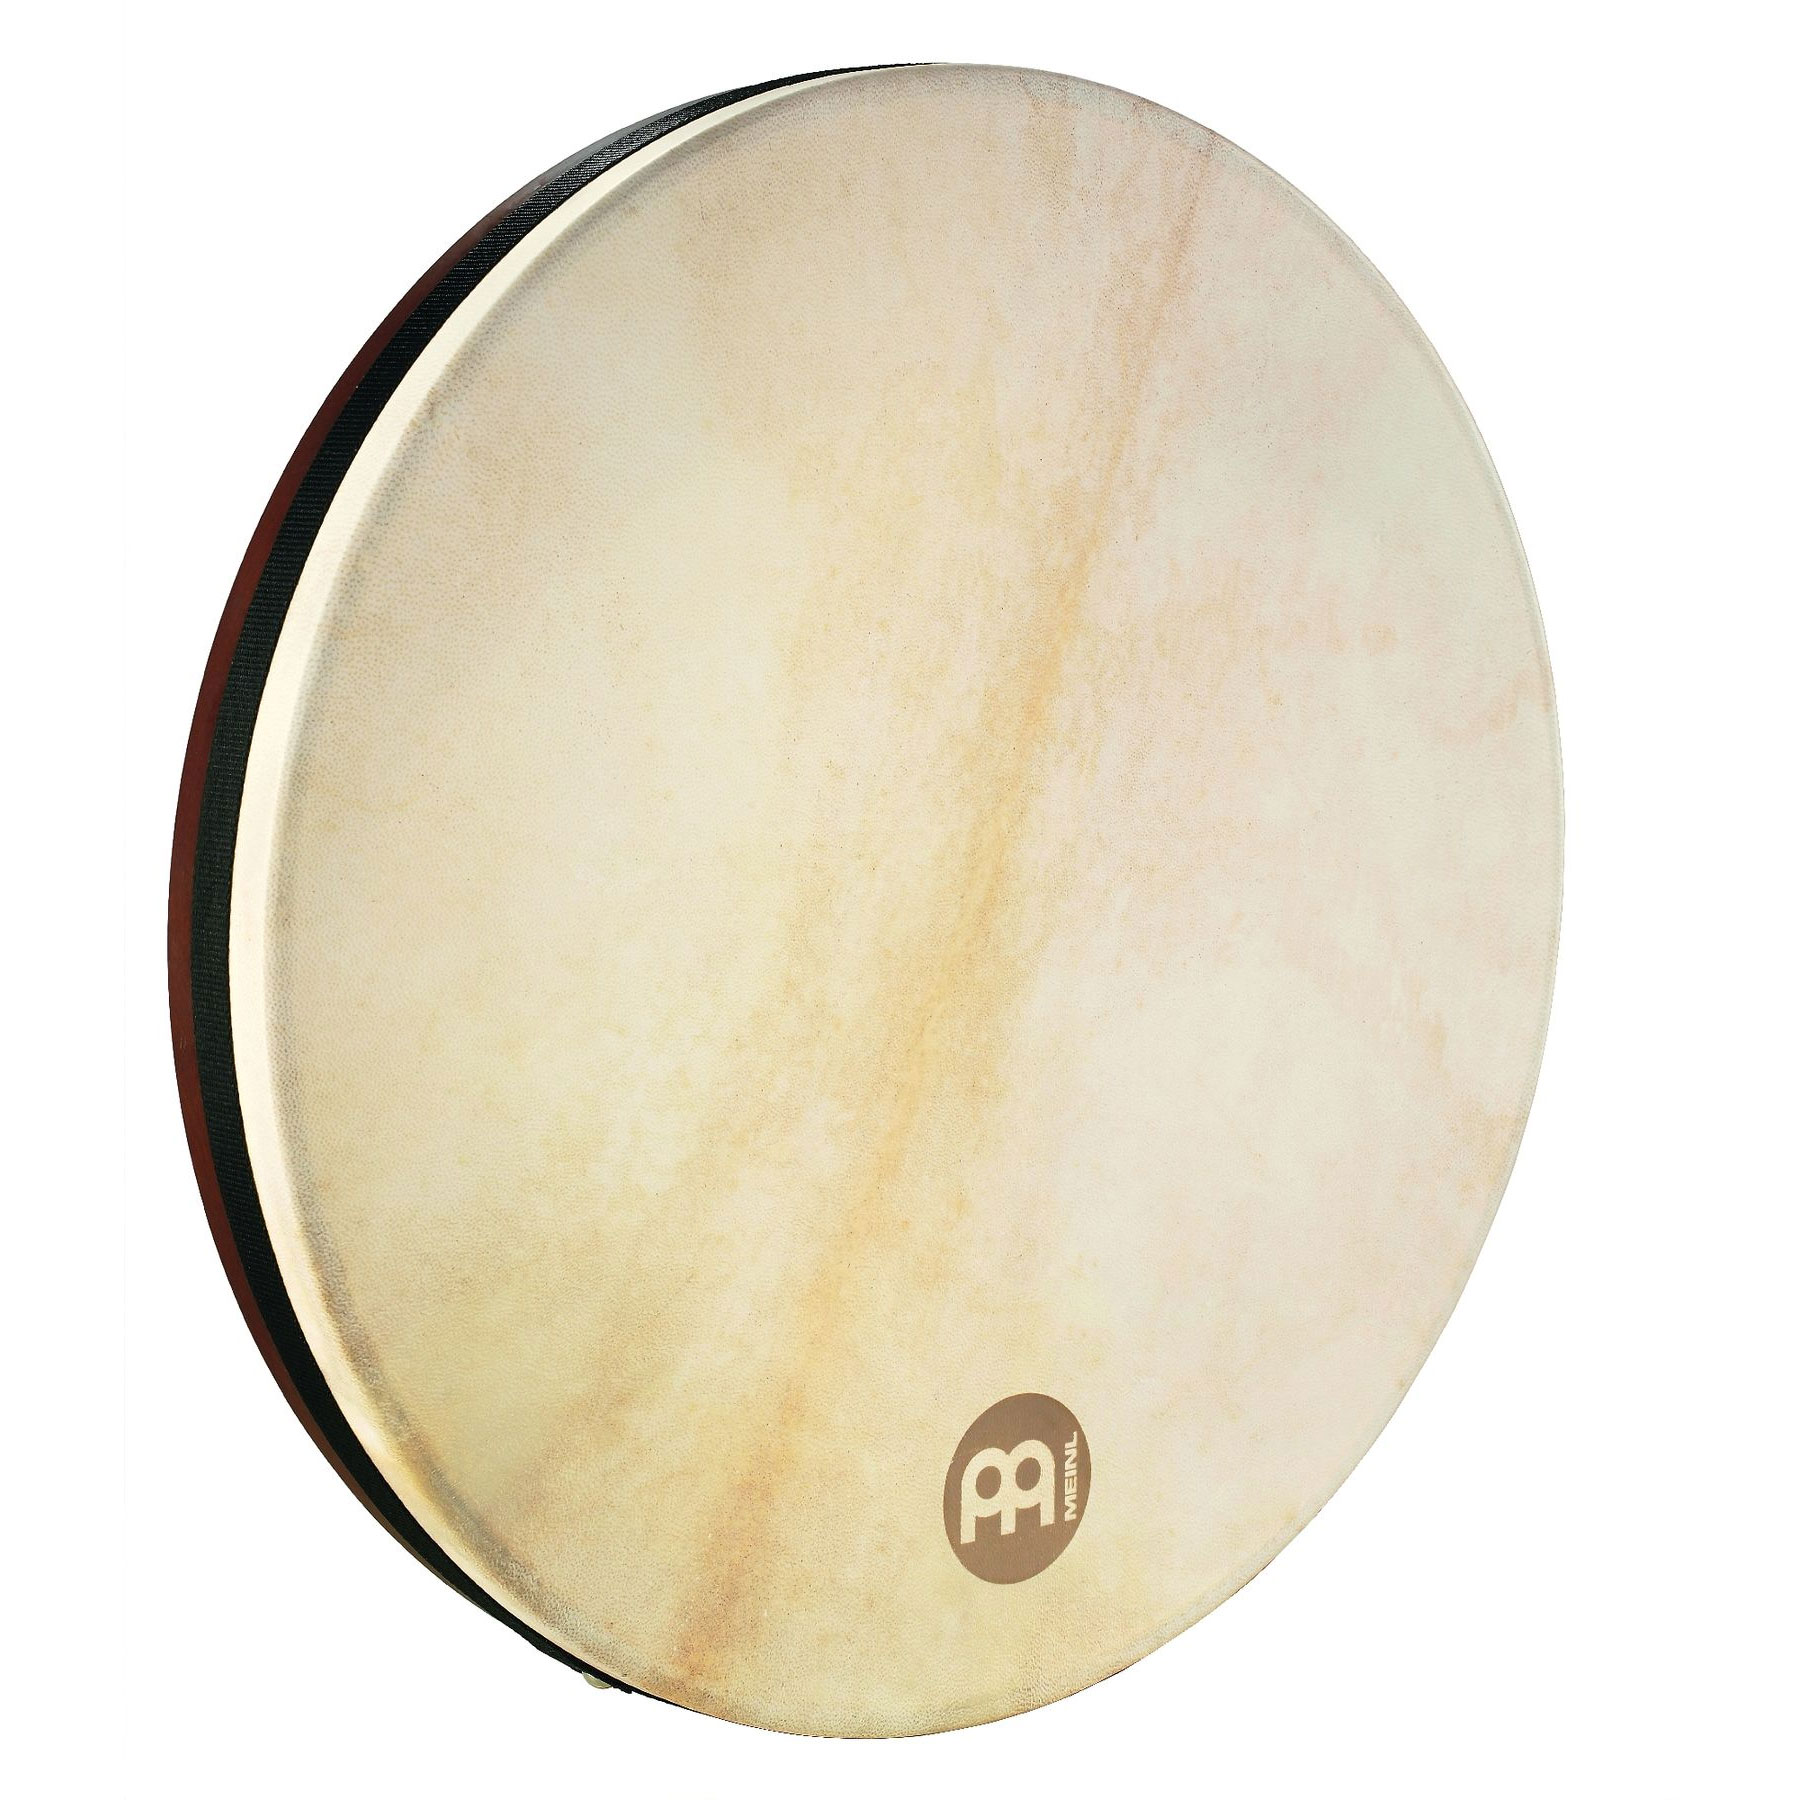 "Meinl 22"" Tar Tunable Frame Drum"